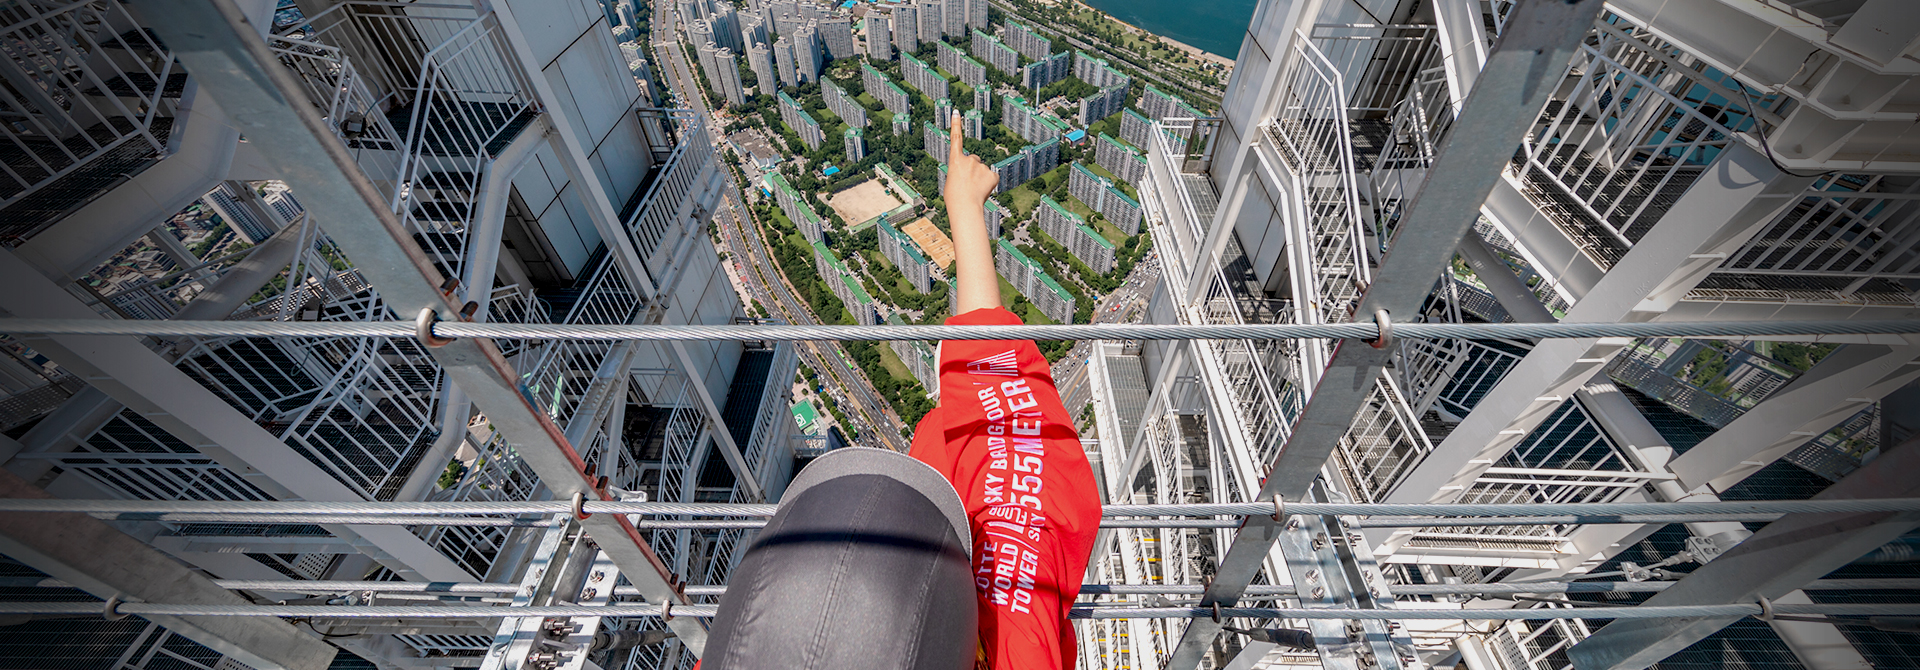 SKY BRIDGE TOUR